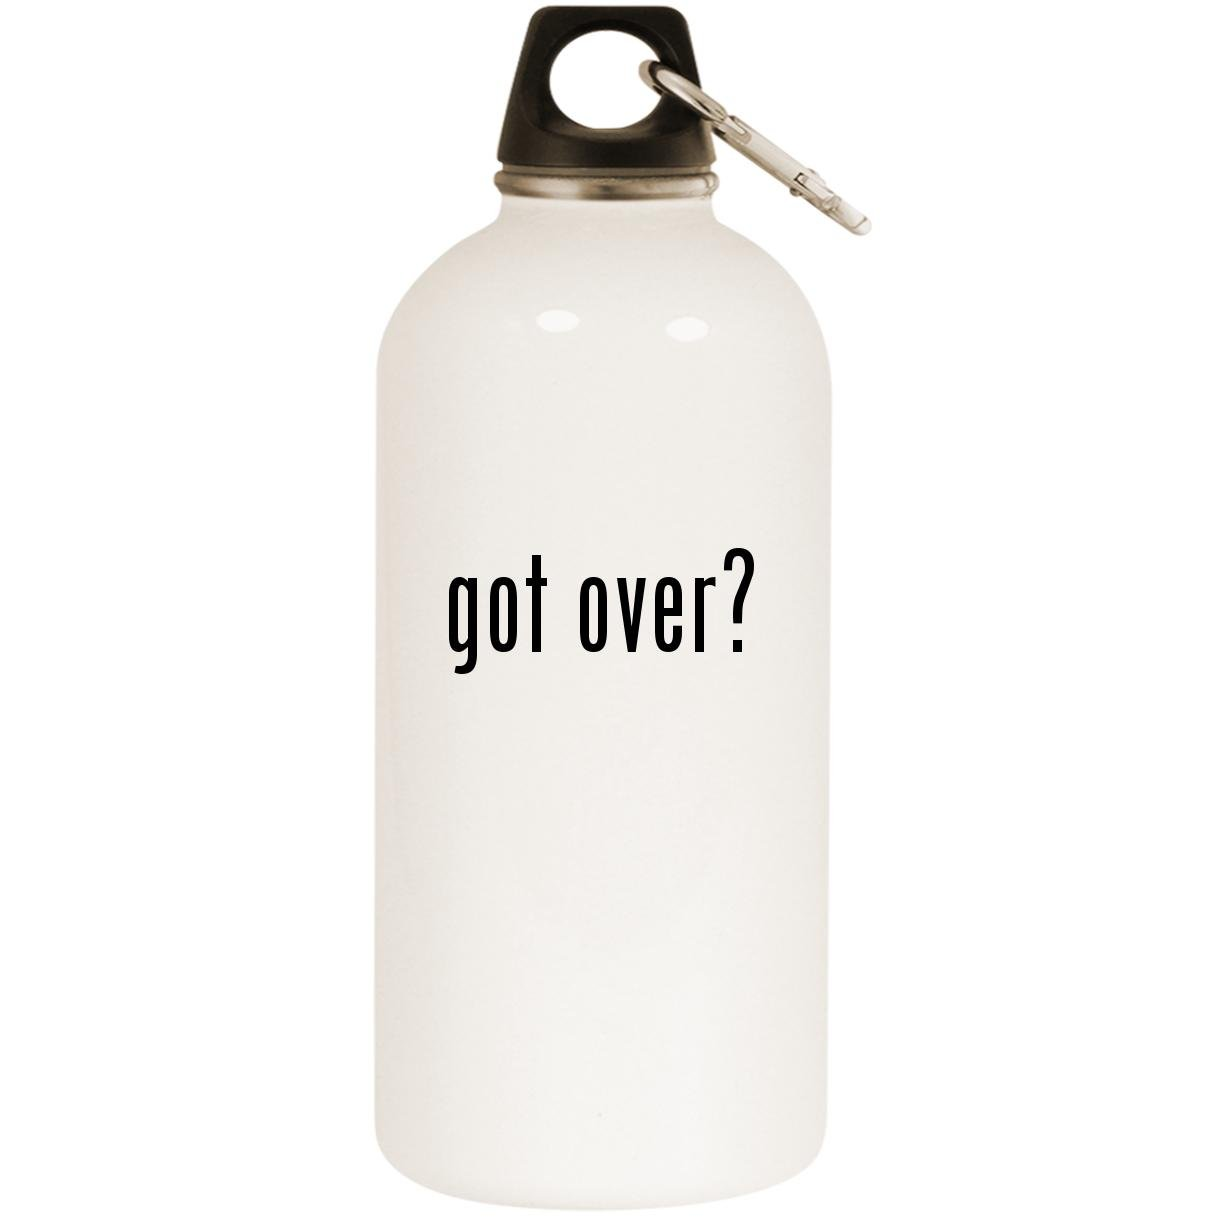 Molandra Products got Over? - White 20oz Stainless Steel Water Bottle with Carabiner